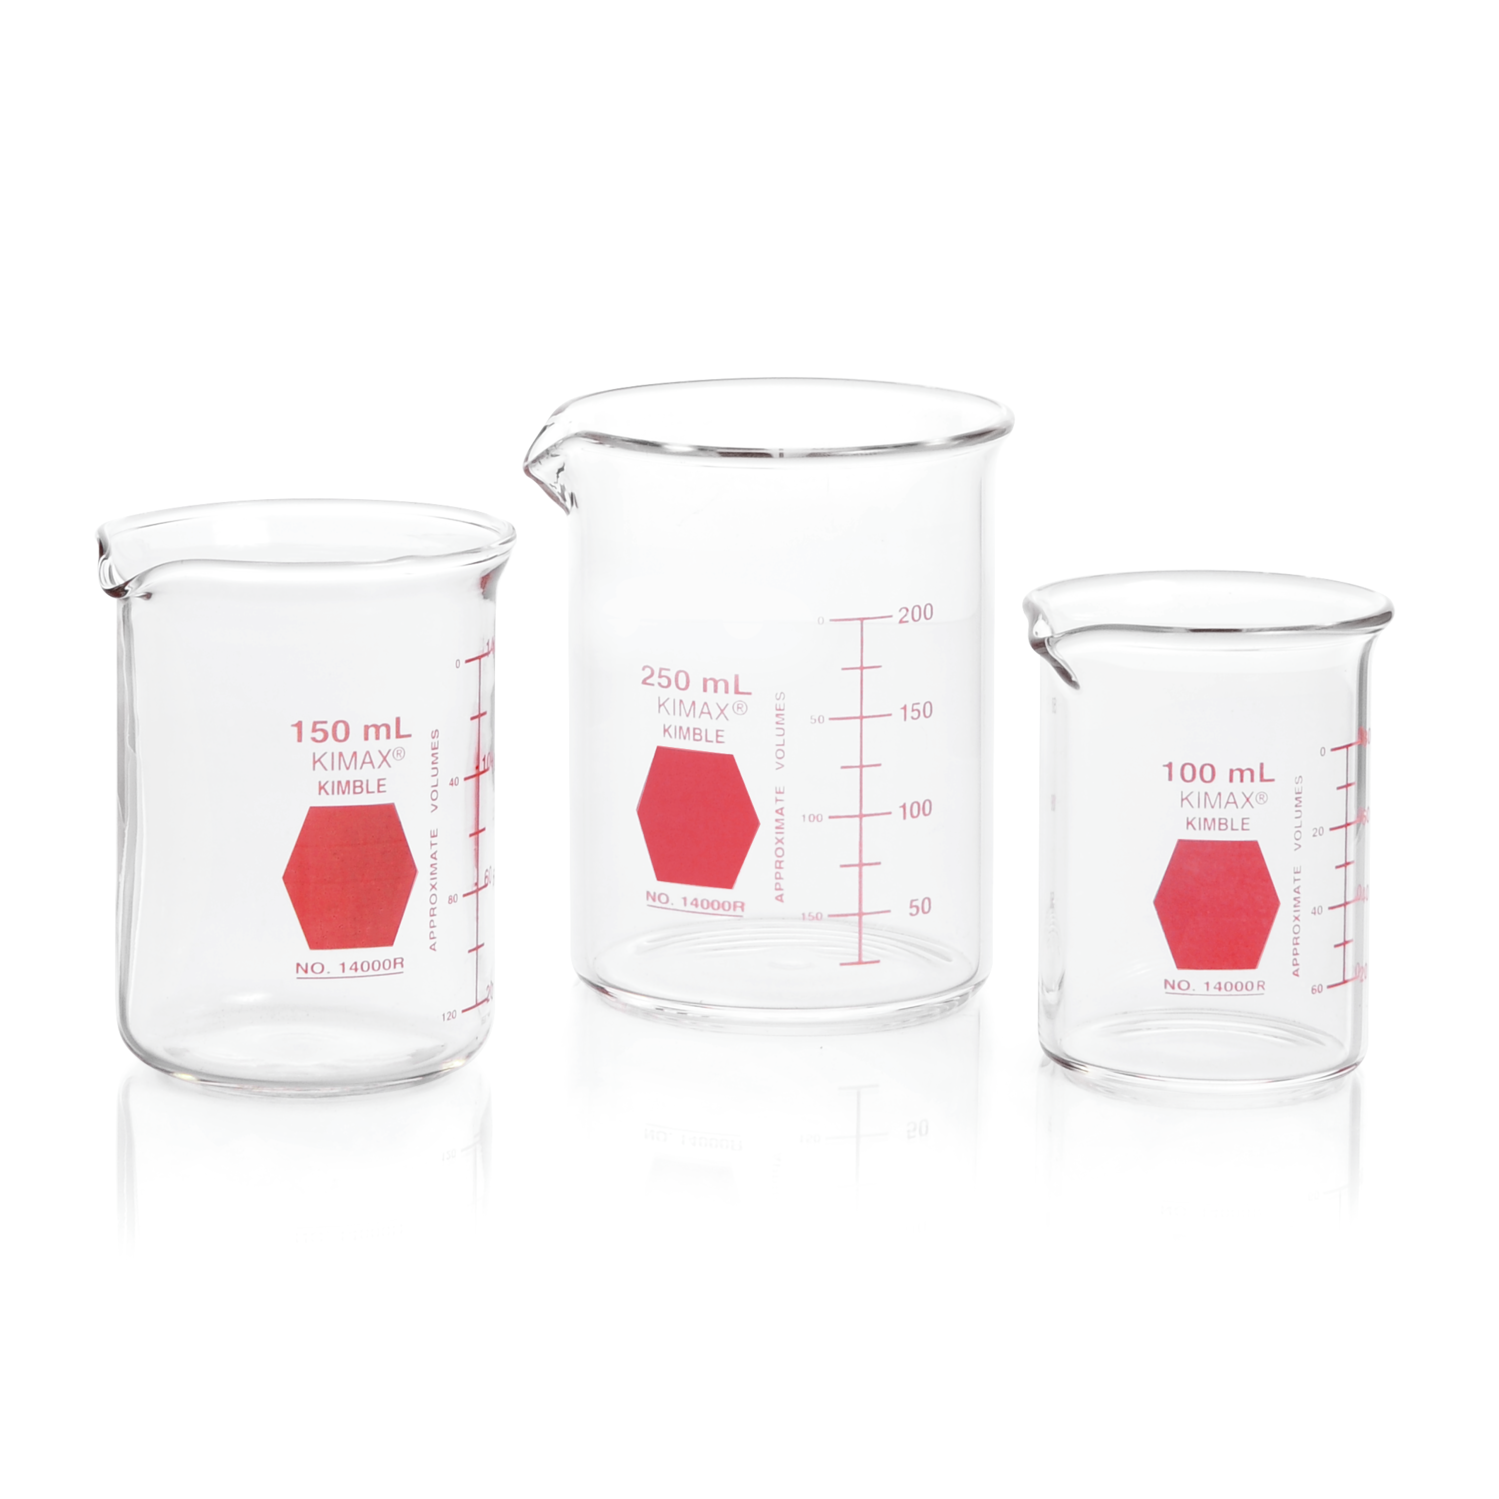 KIMBLE® KIMAX® Colorware Beaker, low form, with spout, Red, 1000 mL